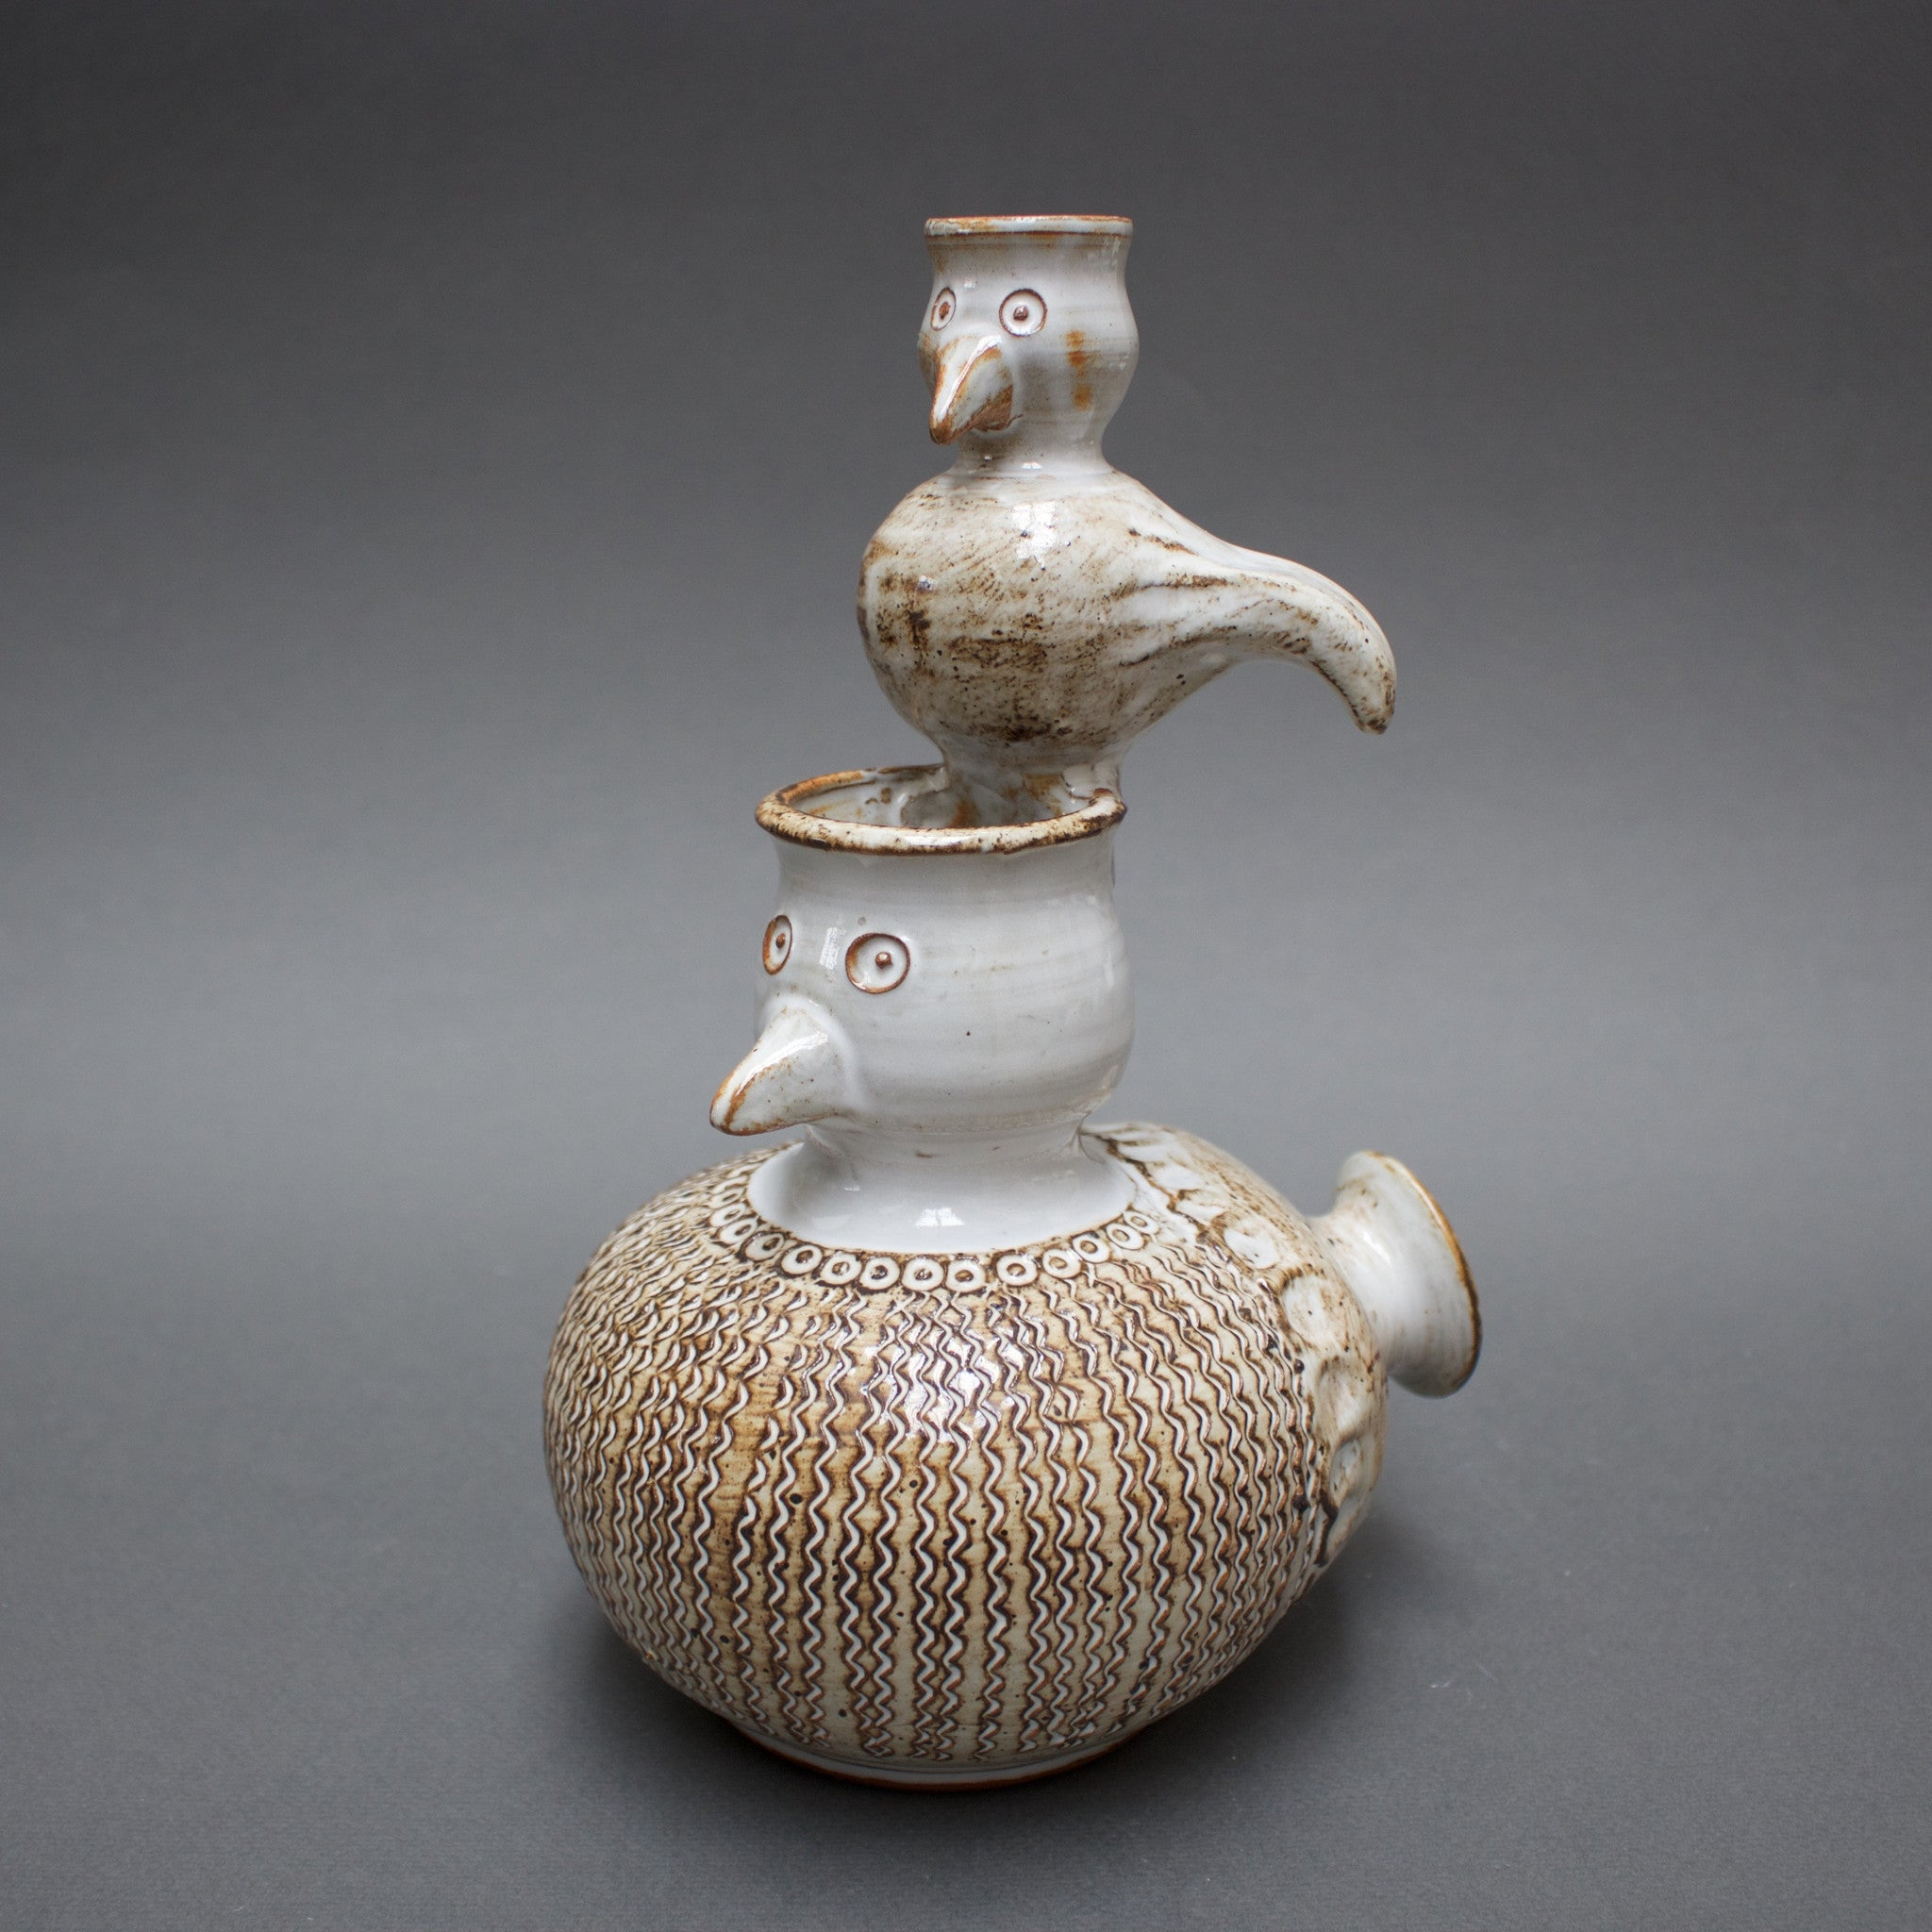 Ceramic Birds by Dominicque Pouchain